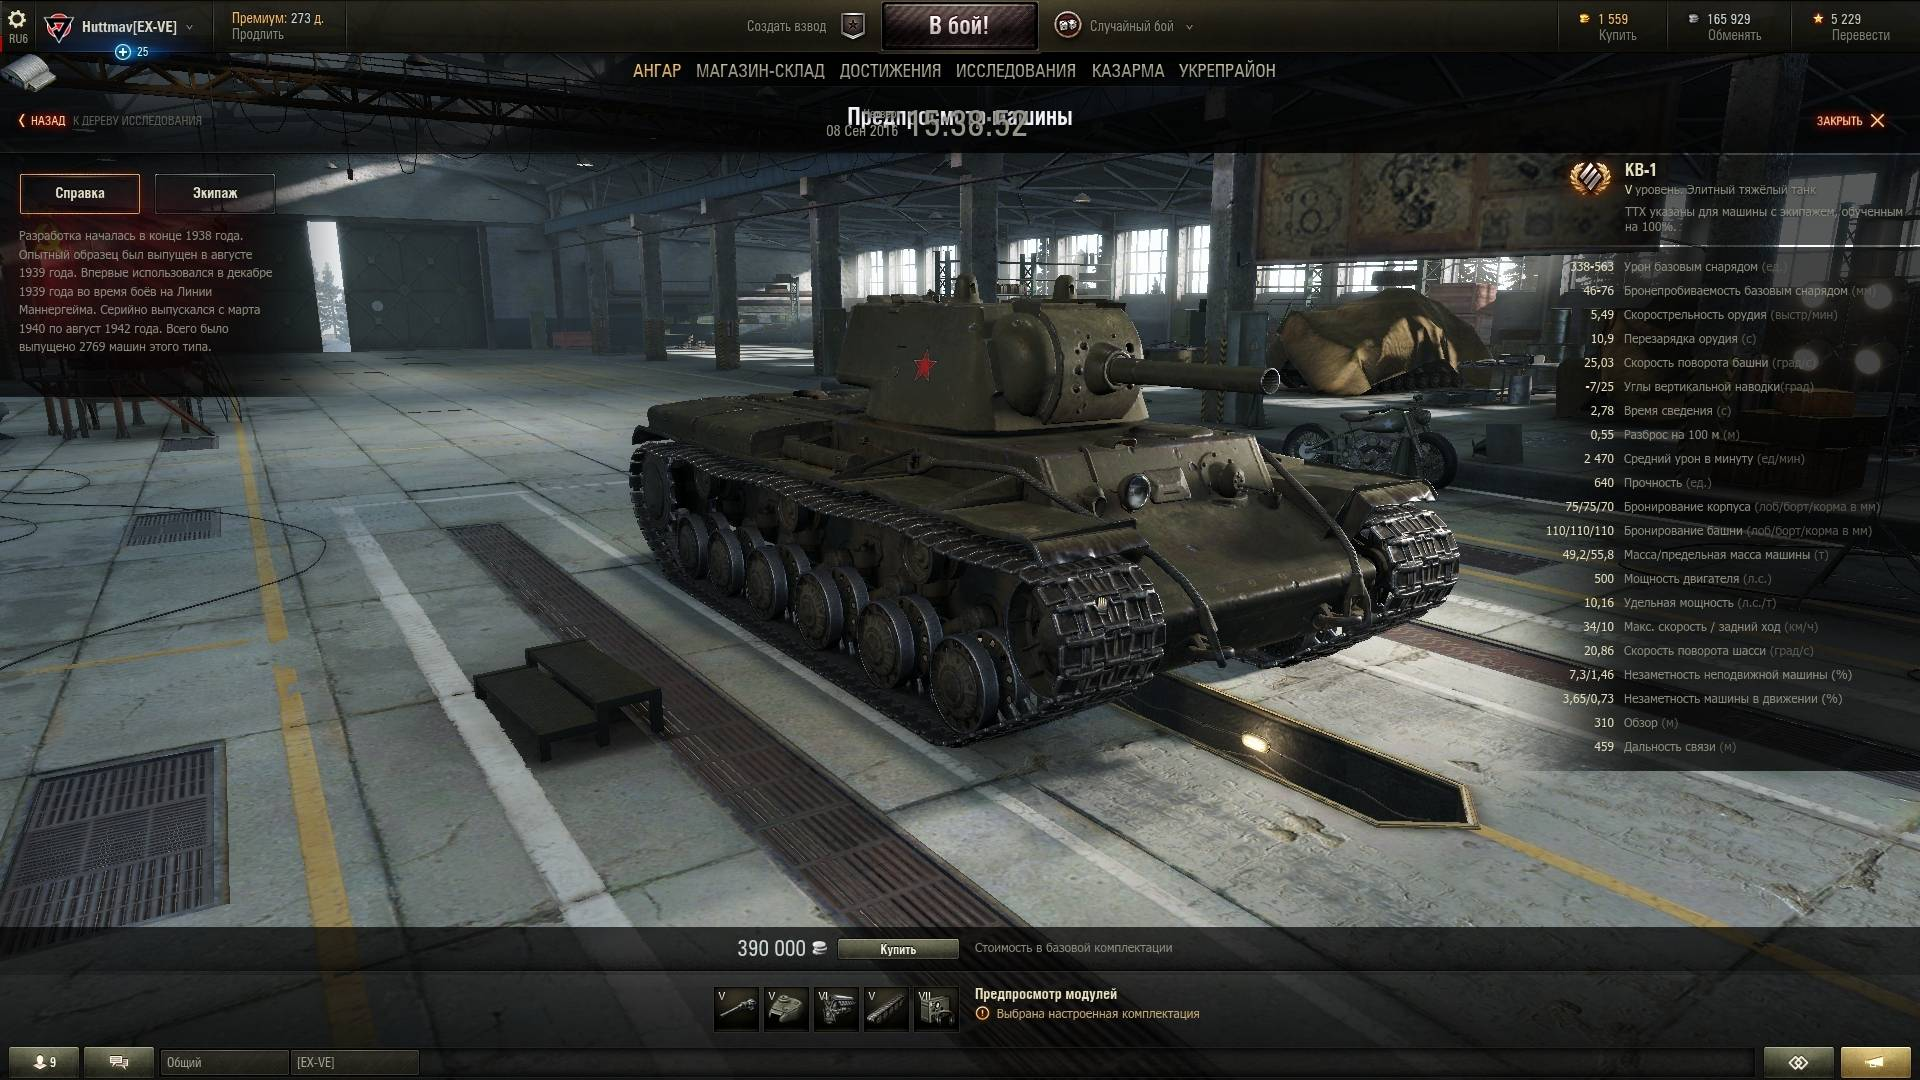 Gtx950m world of tanks